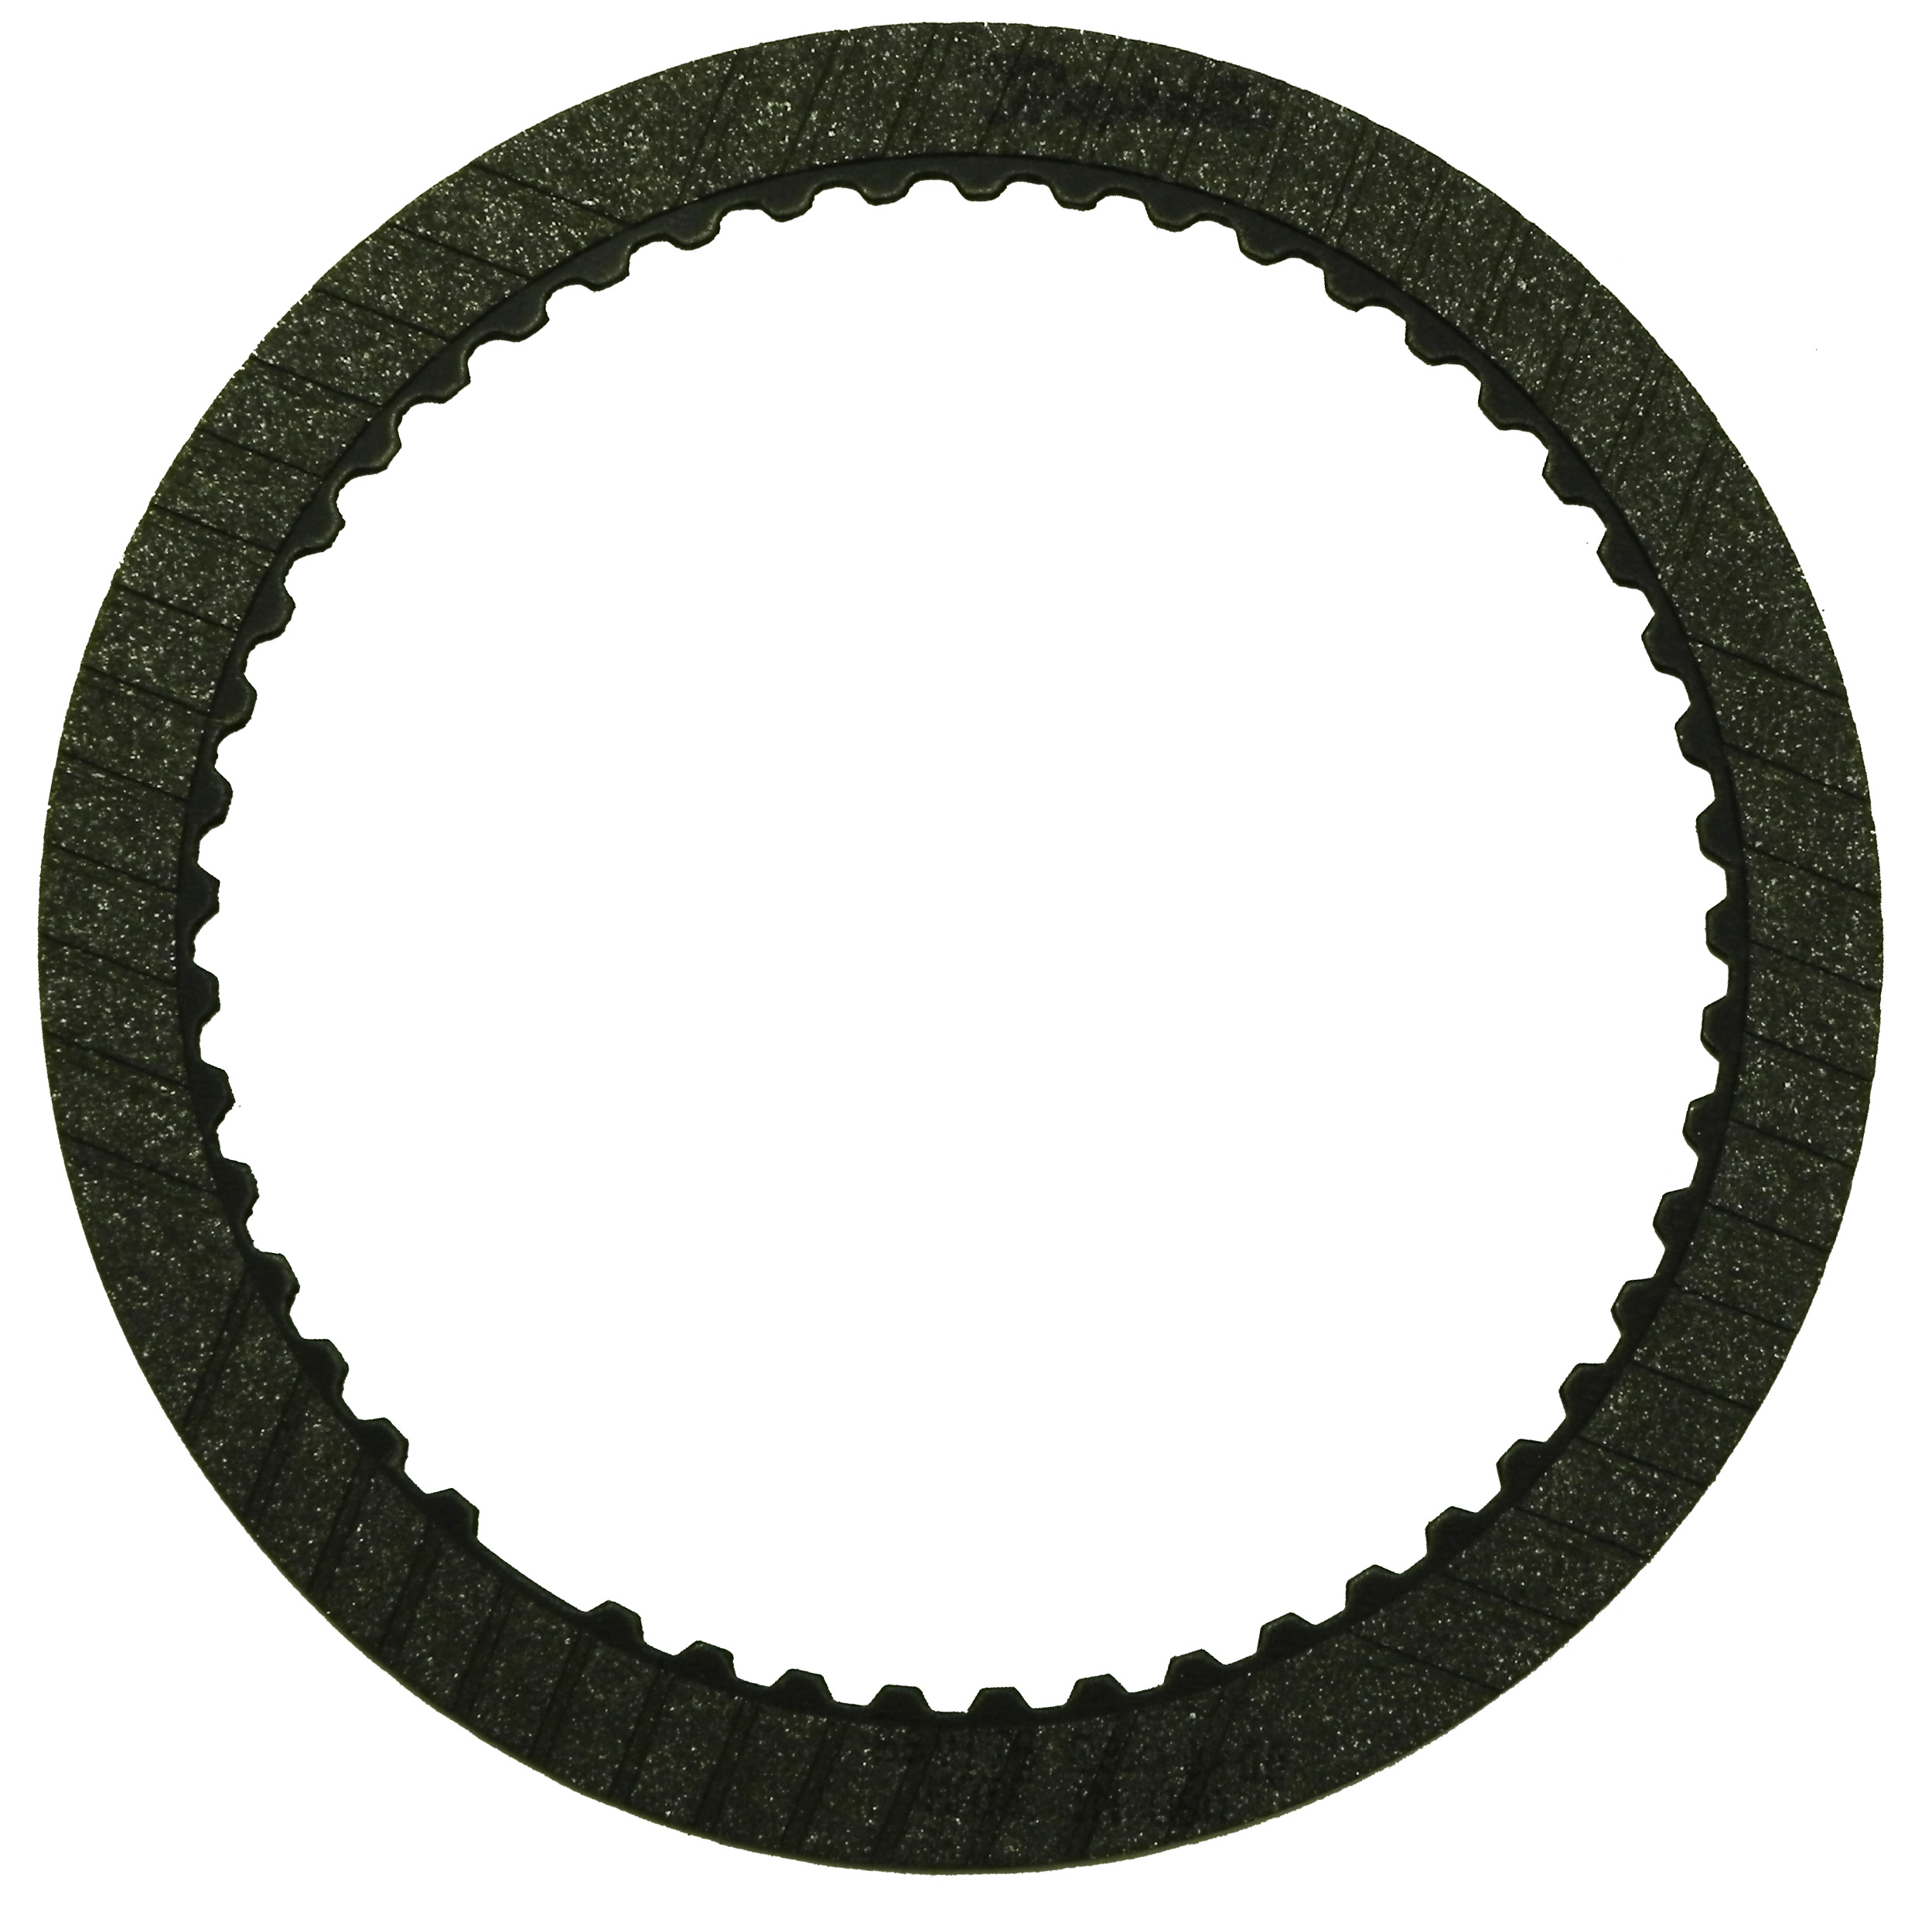 R560176 | 1975-ON Friction Clutch Plate Graphitic Direct, Reverse Graphitic